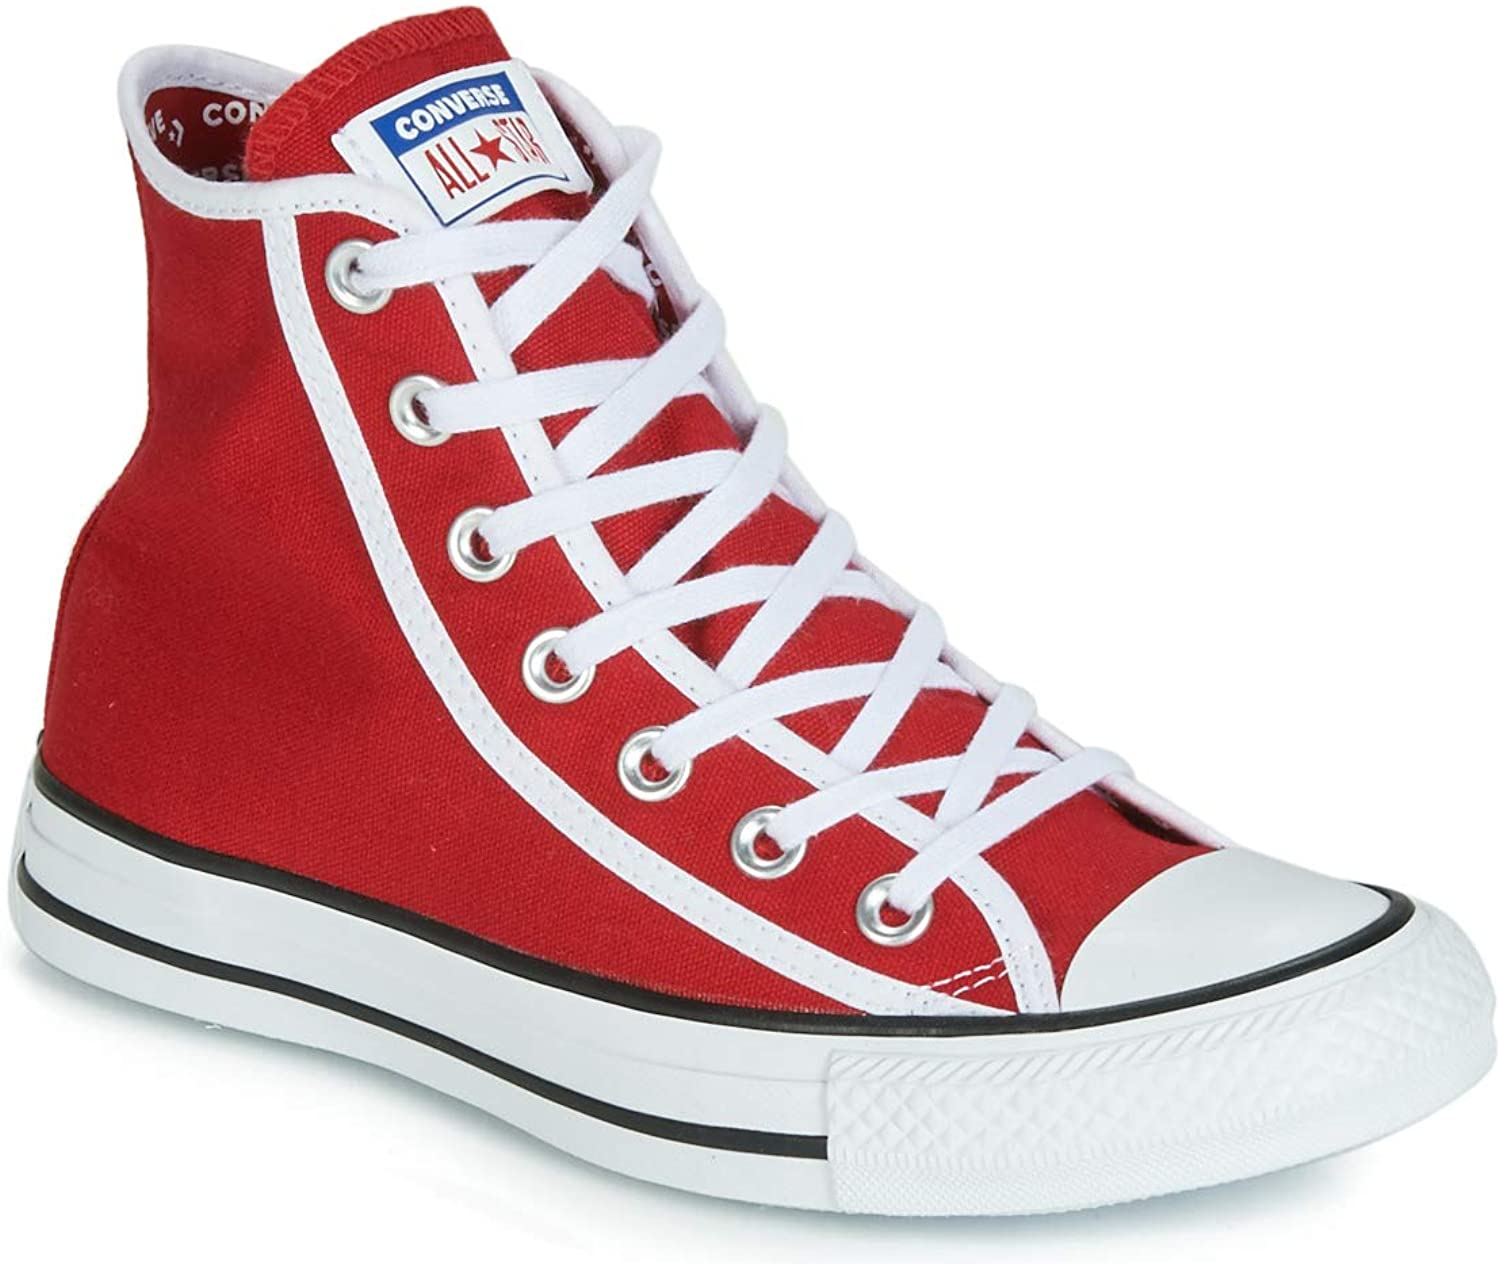 Converse Boys' Trainers Red red Bianco White